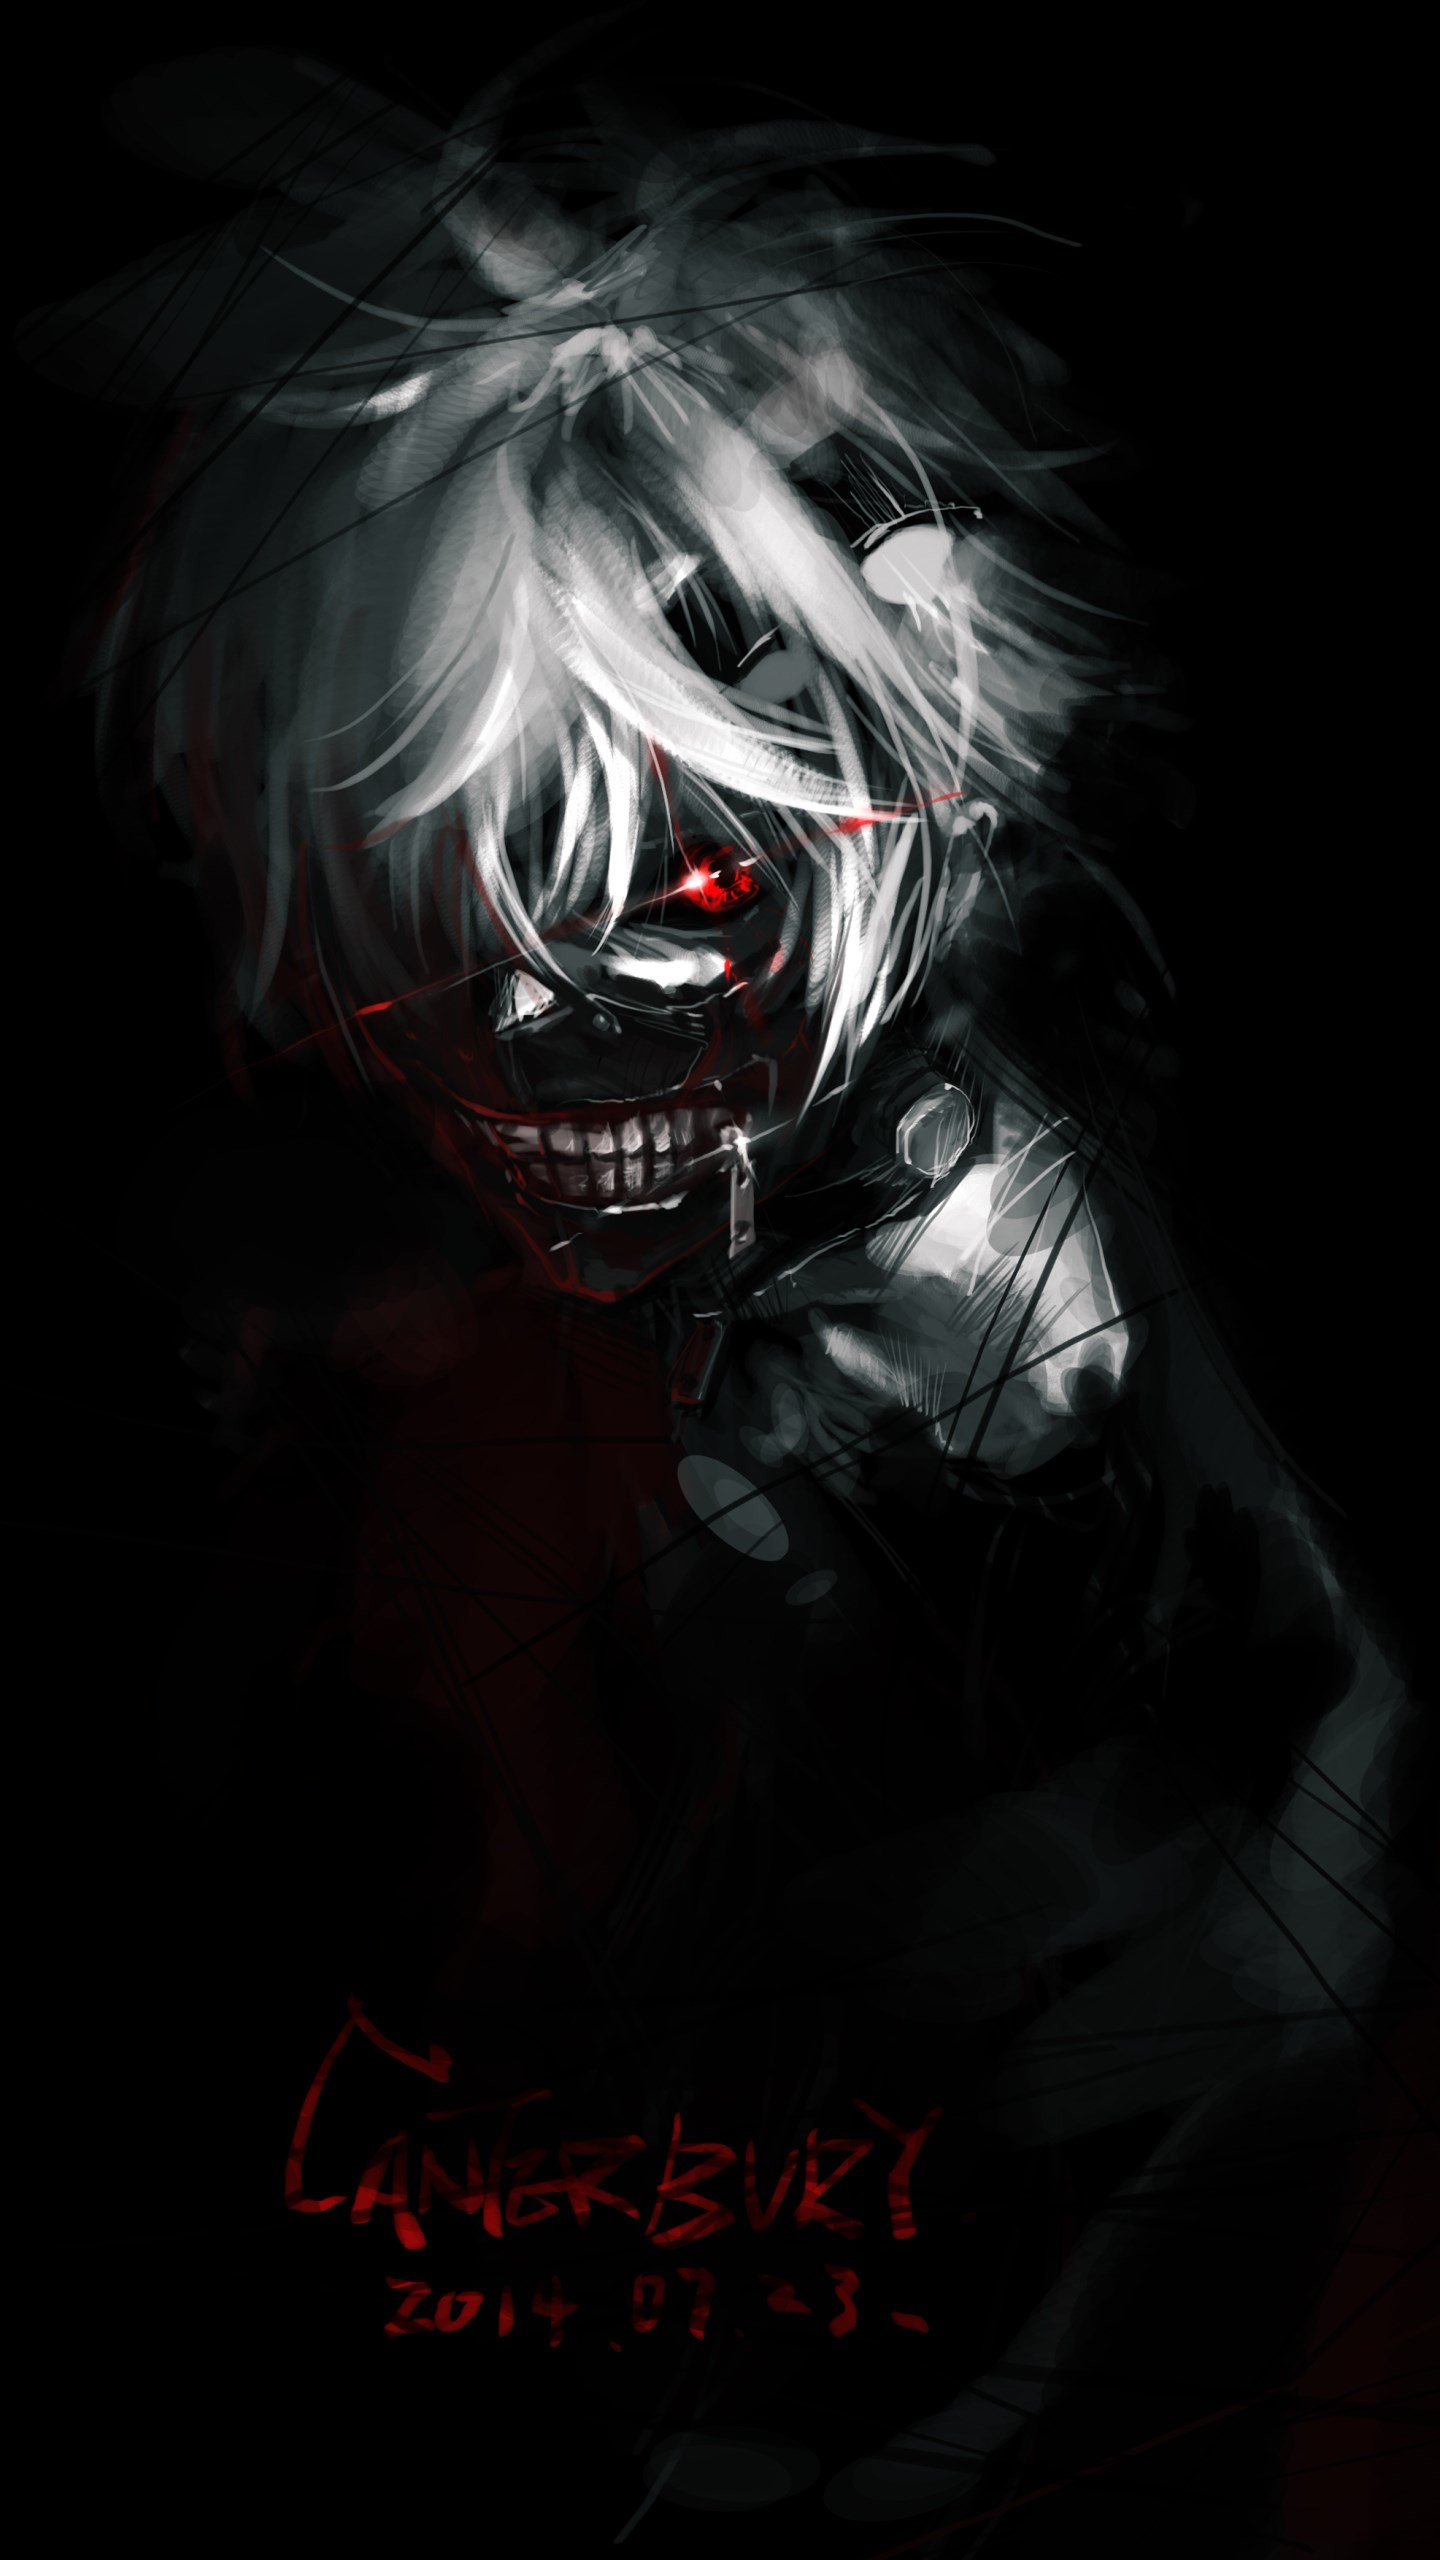 Tokyo Ghoul Iphone Wallpaper 76 Images